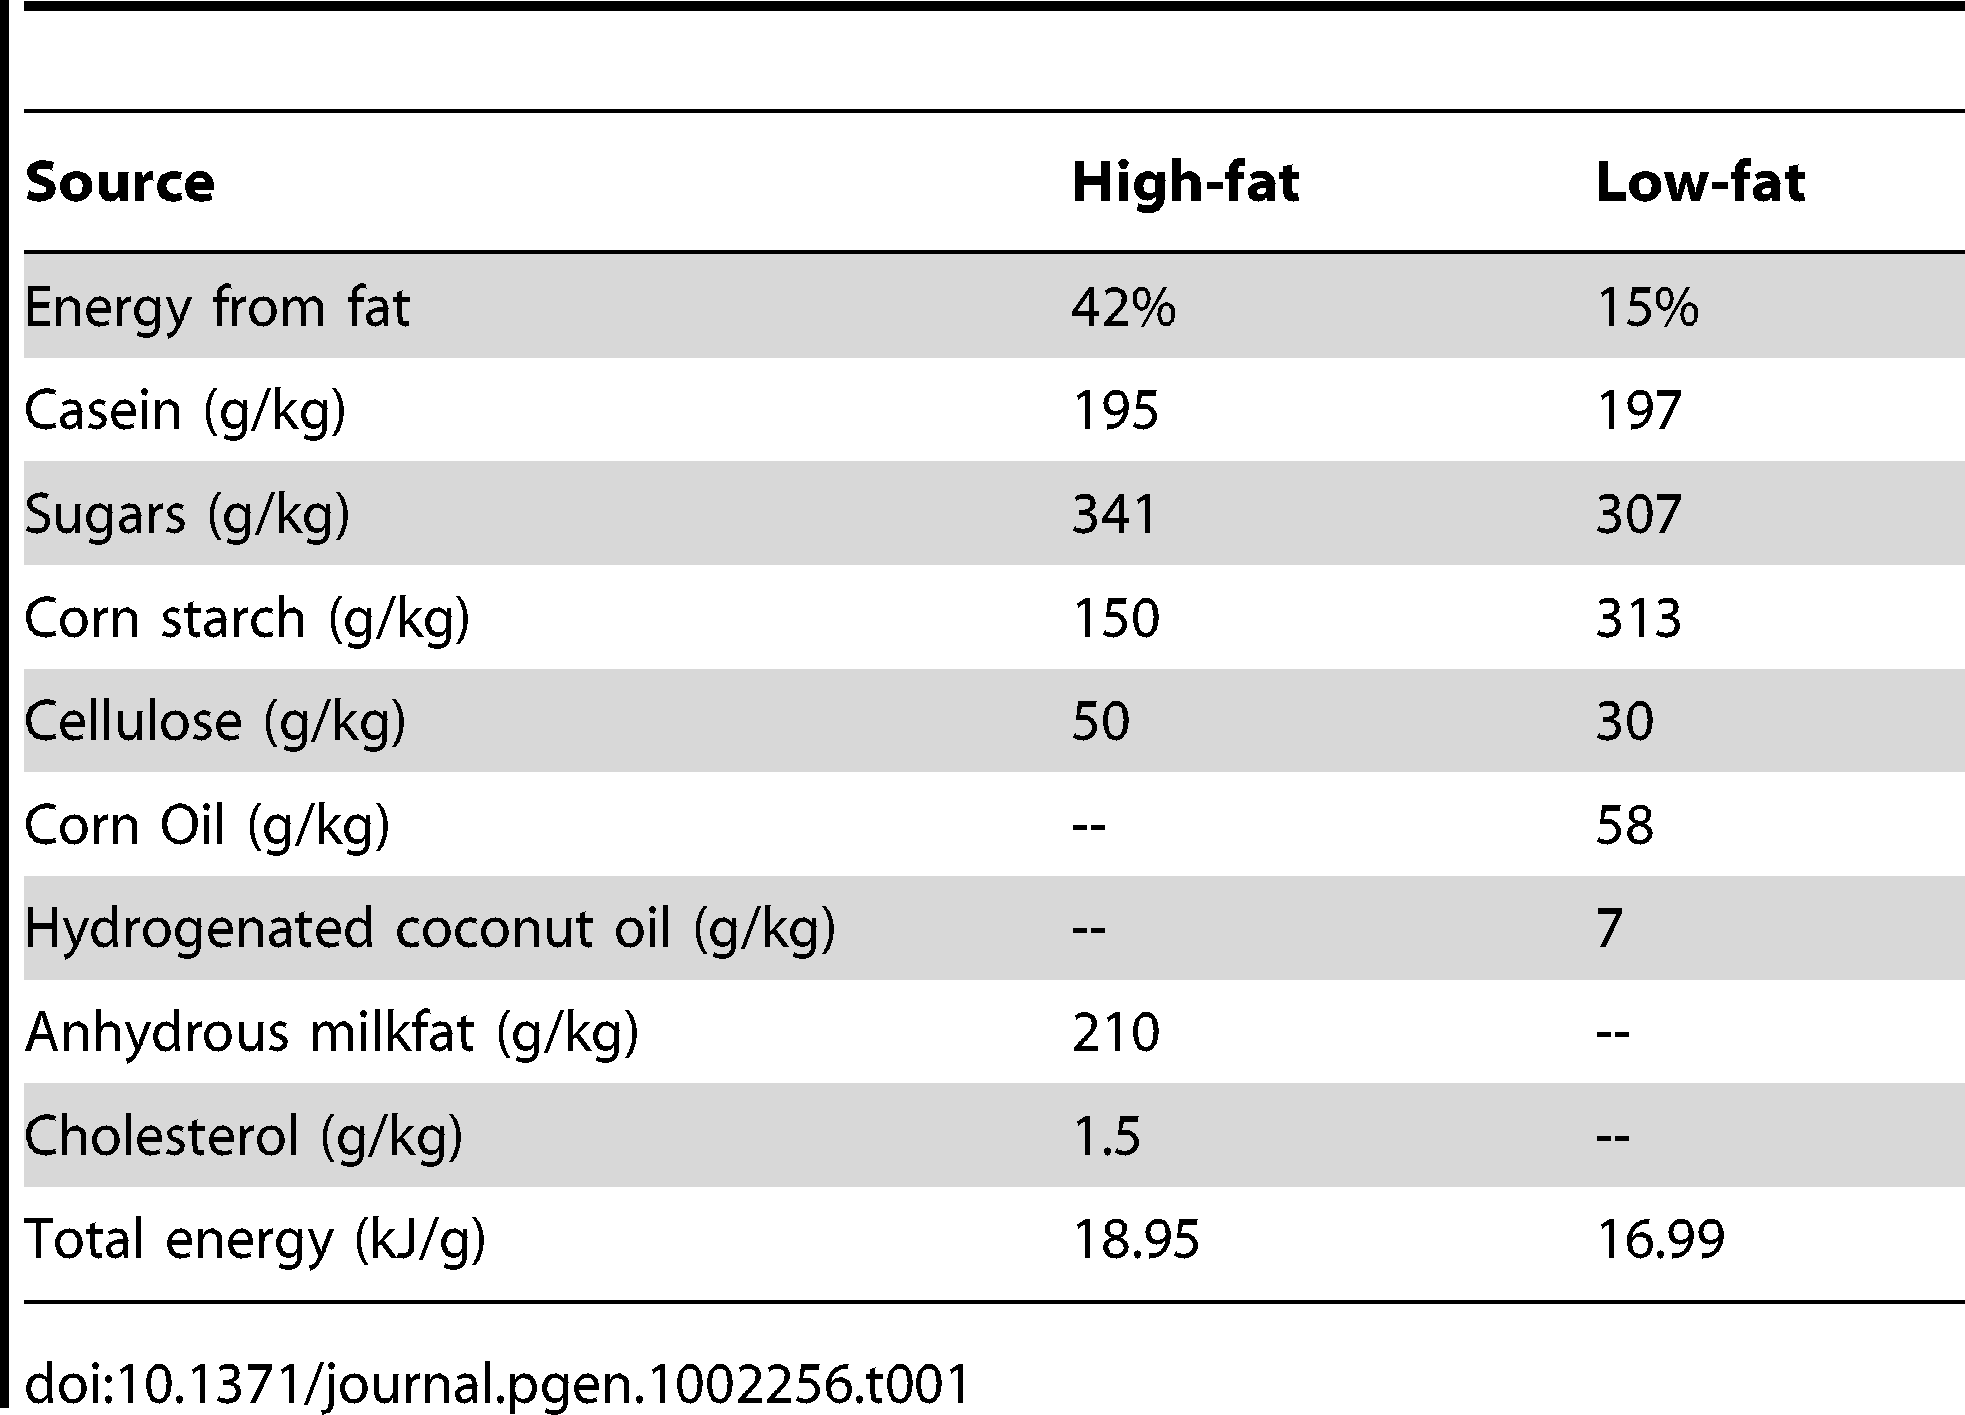 Composition of the high- and low-fat diets used in this experiment.